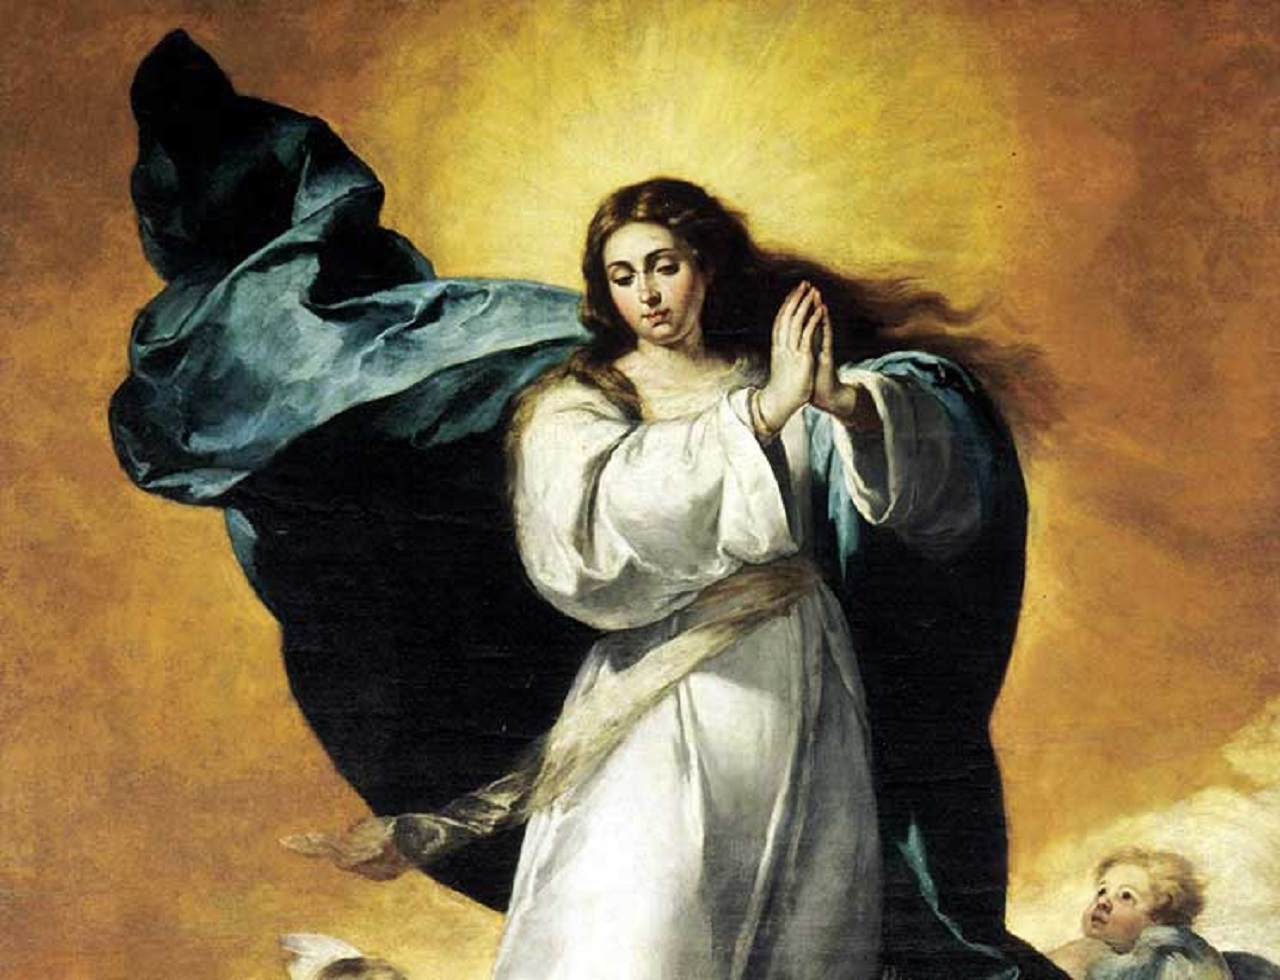 The Immaculate Conception, painted around 1652 by Bartolomé Esteban Murillo, in the convent of San Francisco in Seville, Spain